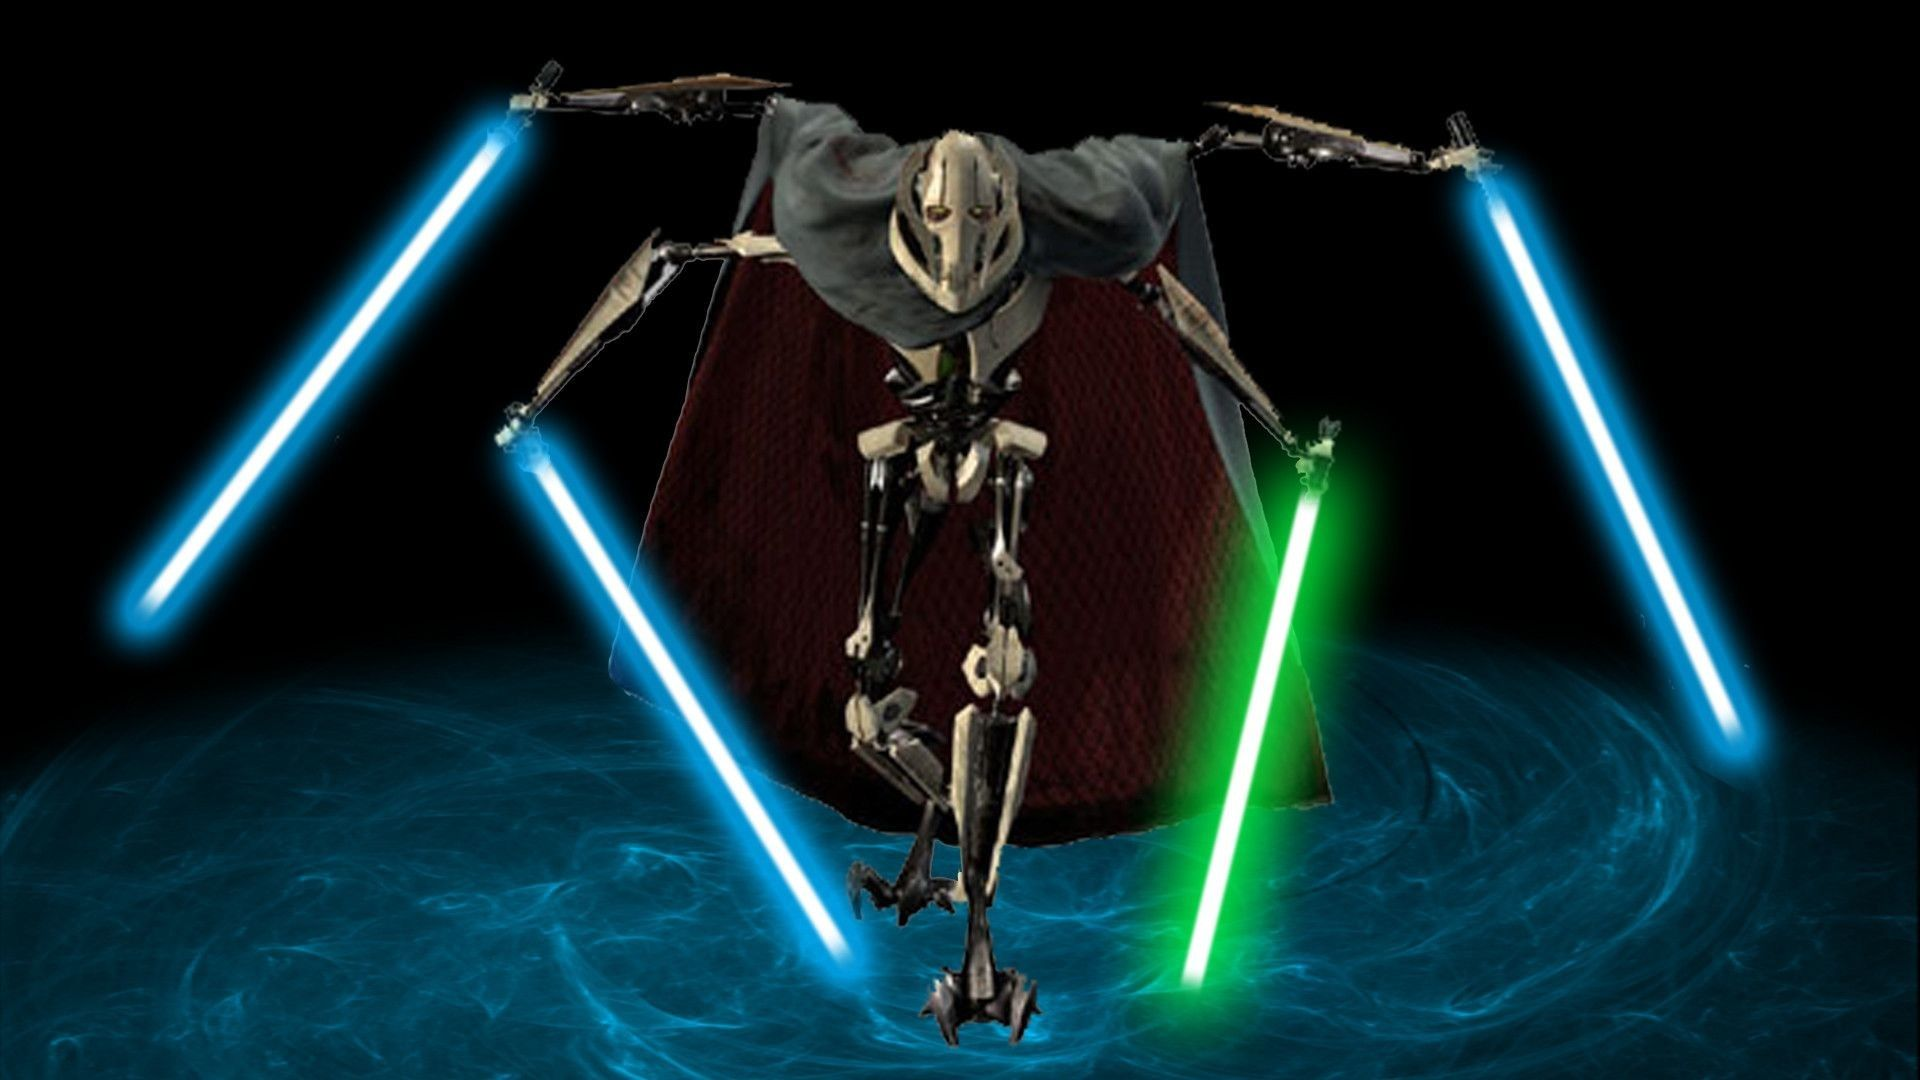 General Grievous Wallpapers Top Free General Grievous Backgrounds Wallpaperaccess